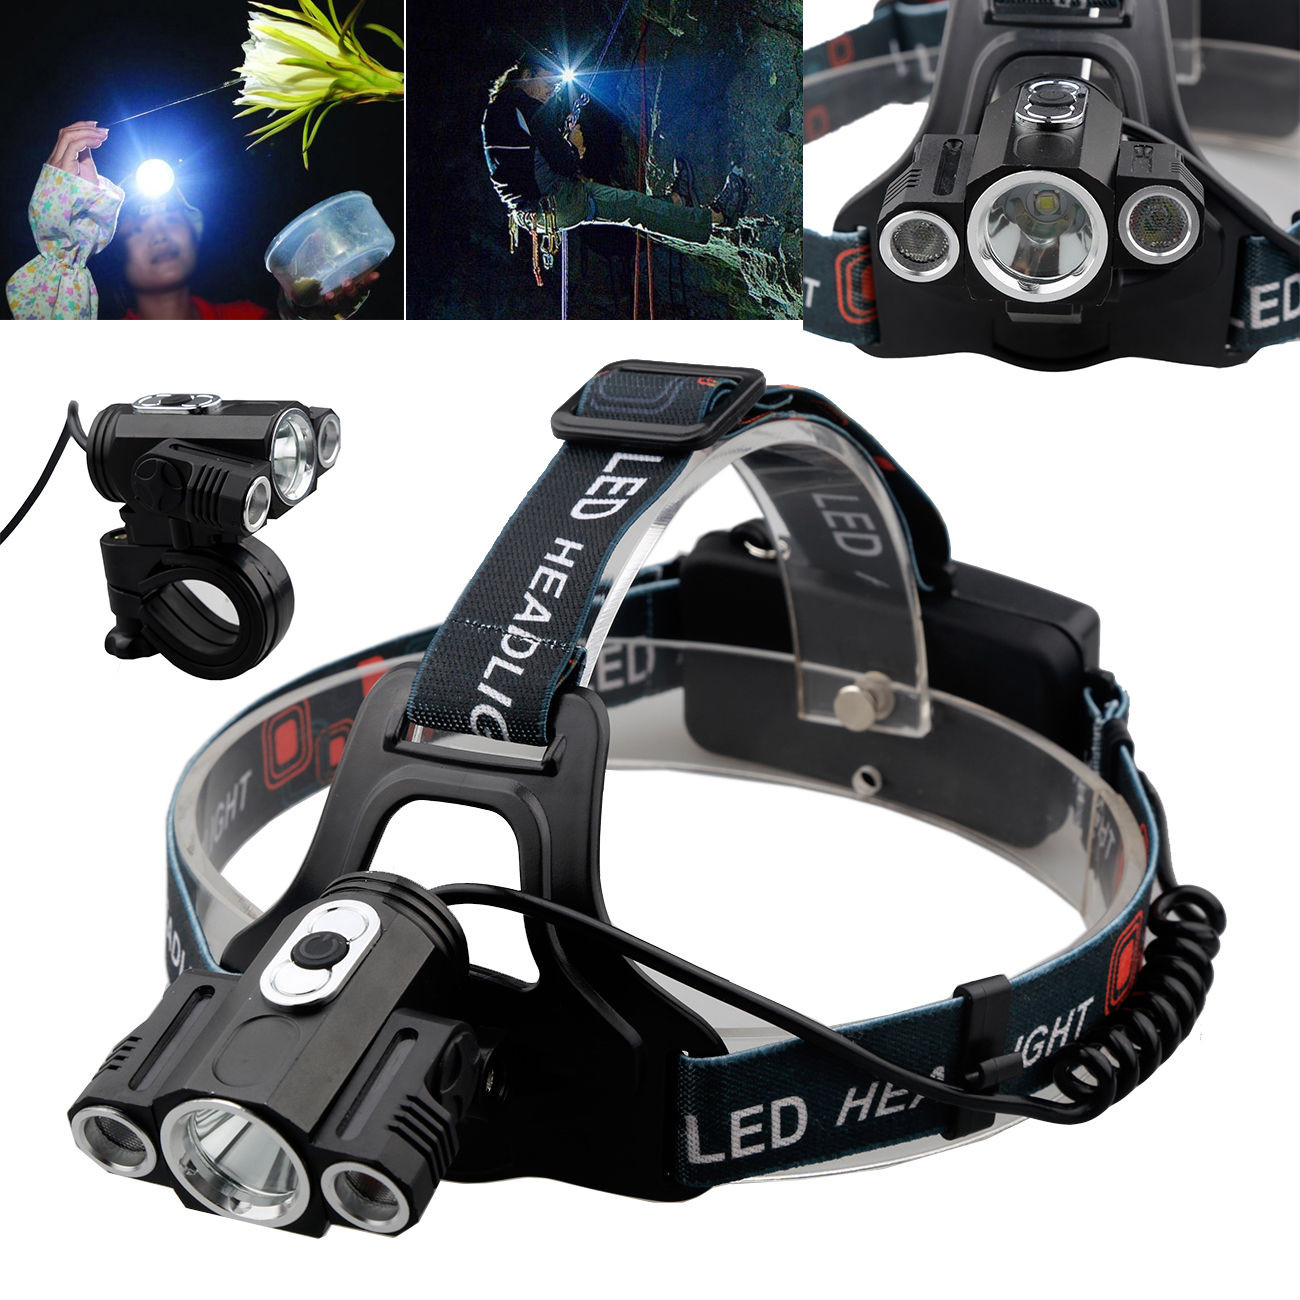 15000Lm Cree 3x T6 LED Rechargeable 18650 Headlamp Headlight Head Torch